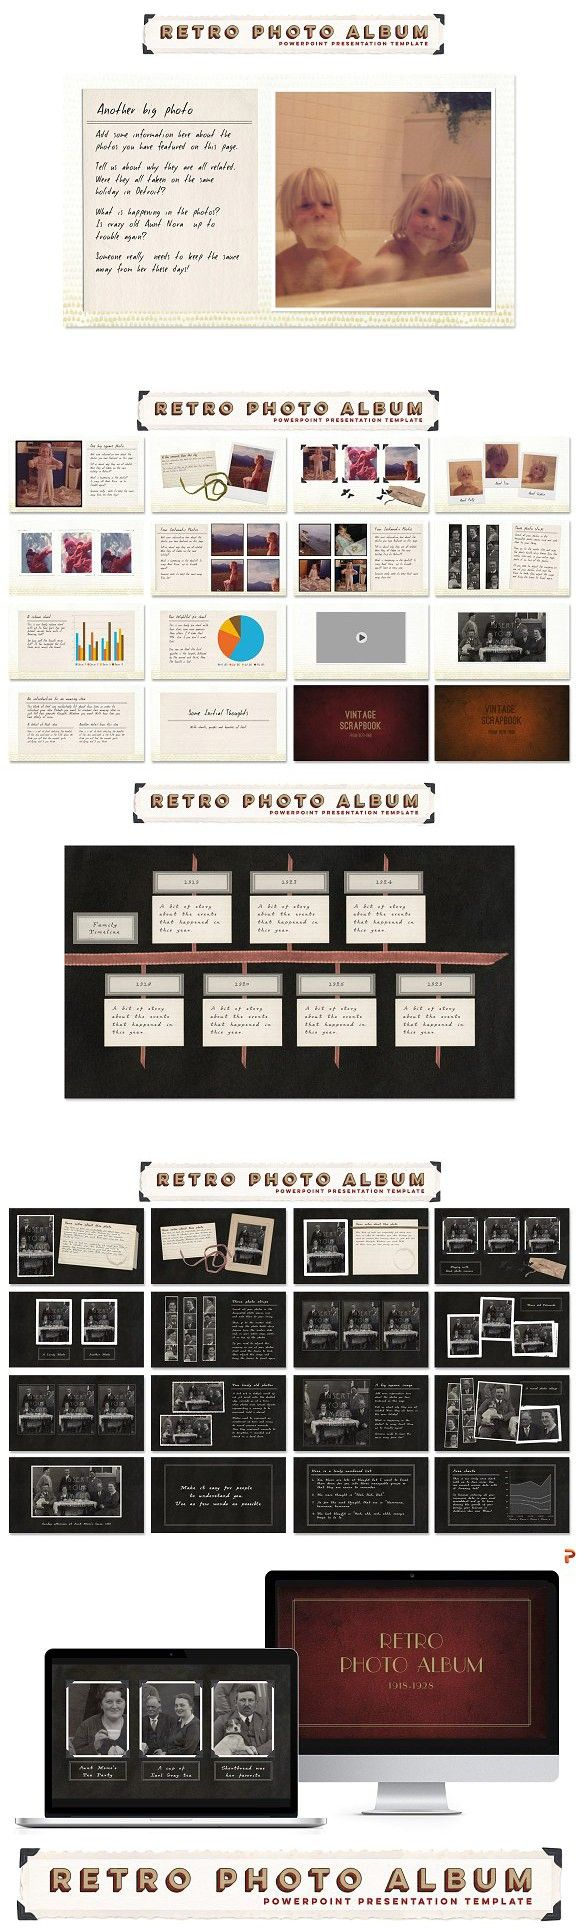 268 best powerpoint design images on pinterest business powerpoint retro photo album ppt template toneelgroepblik Gallery